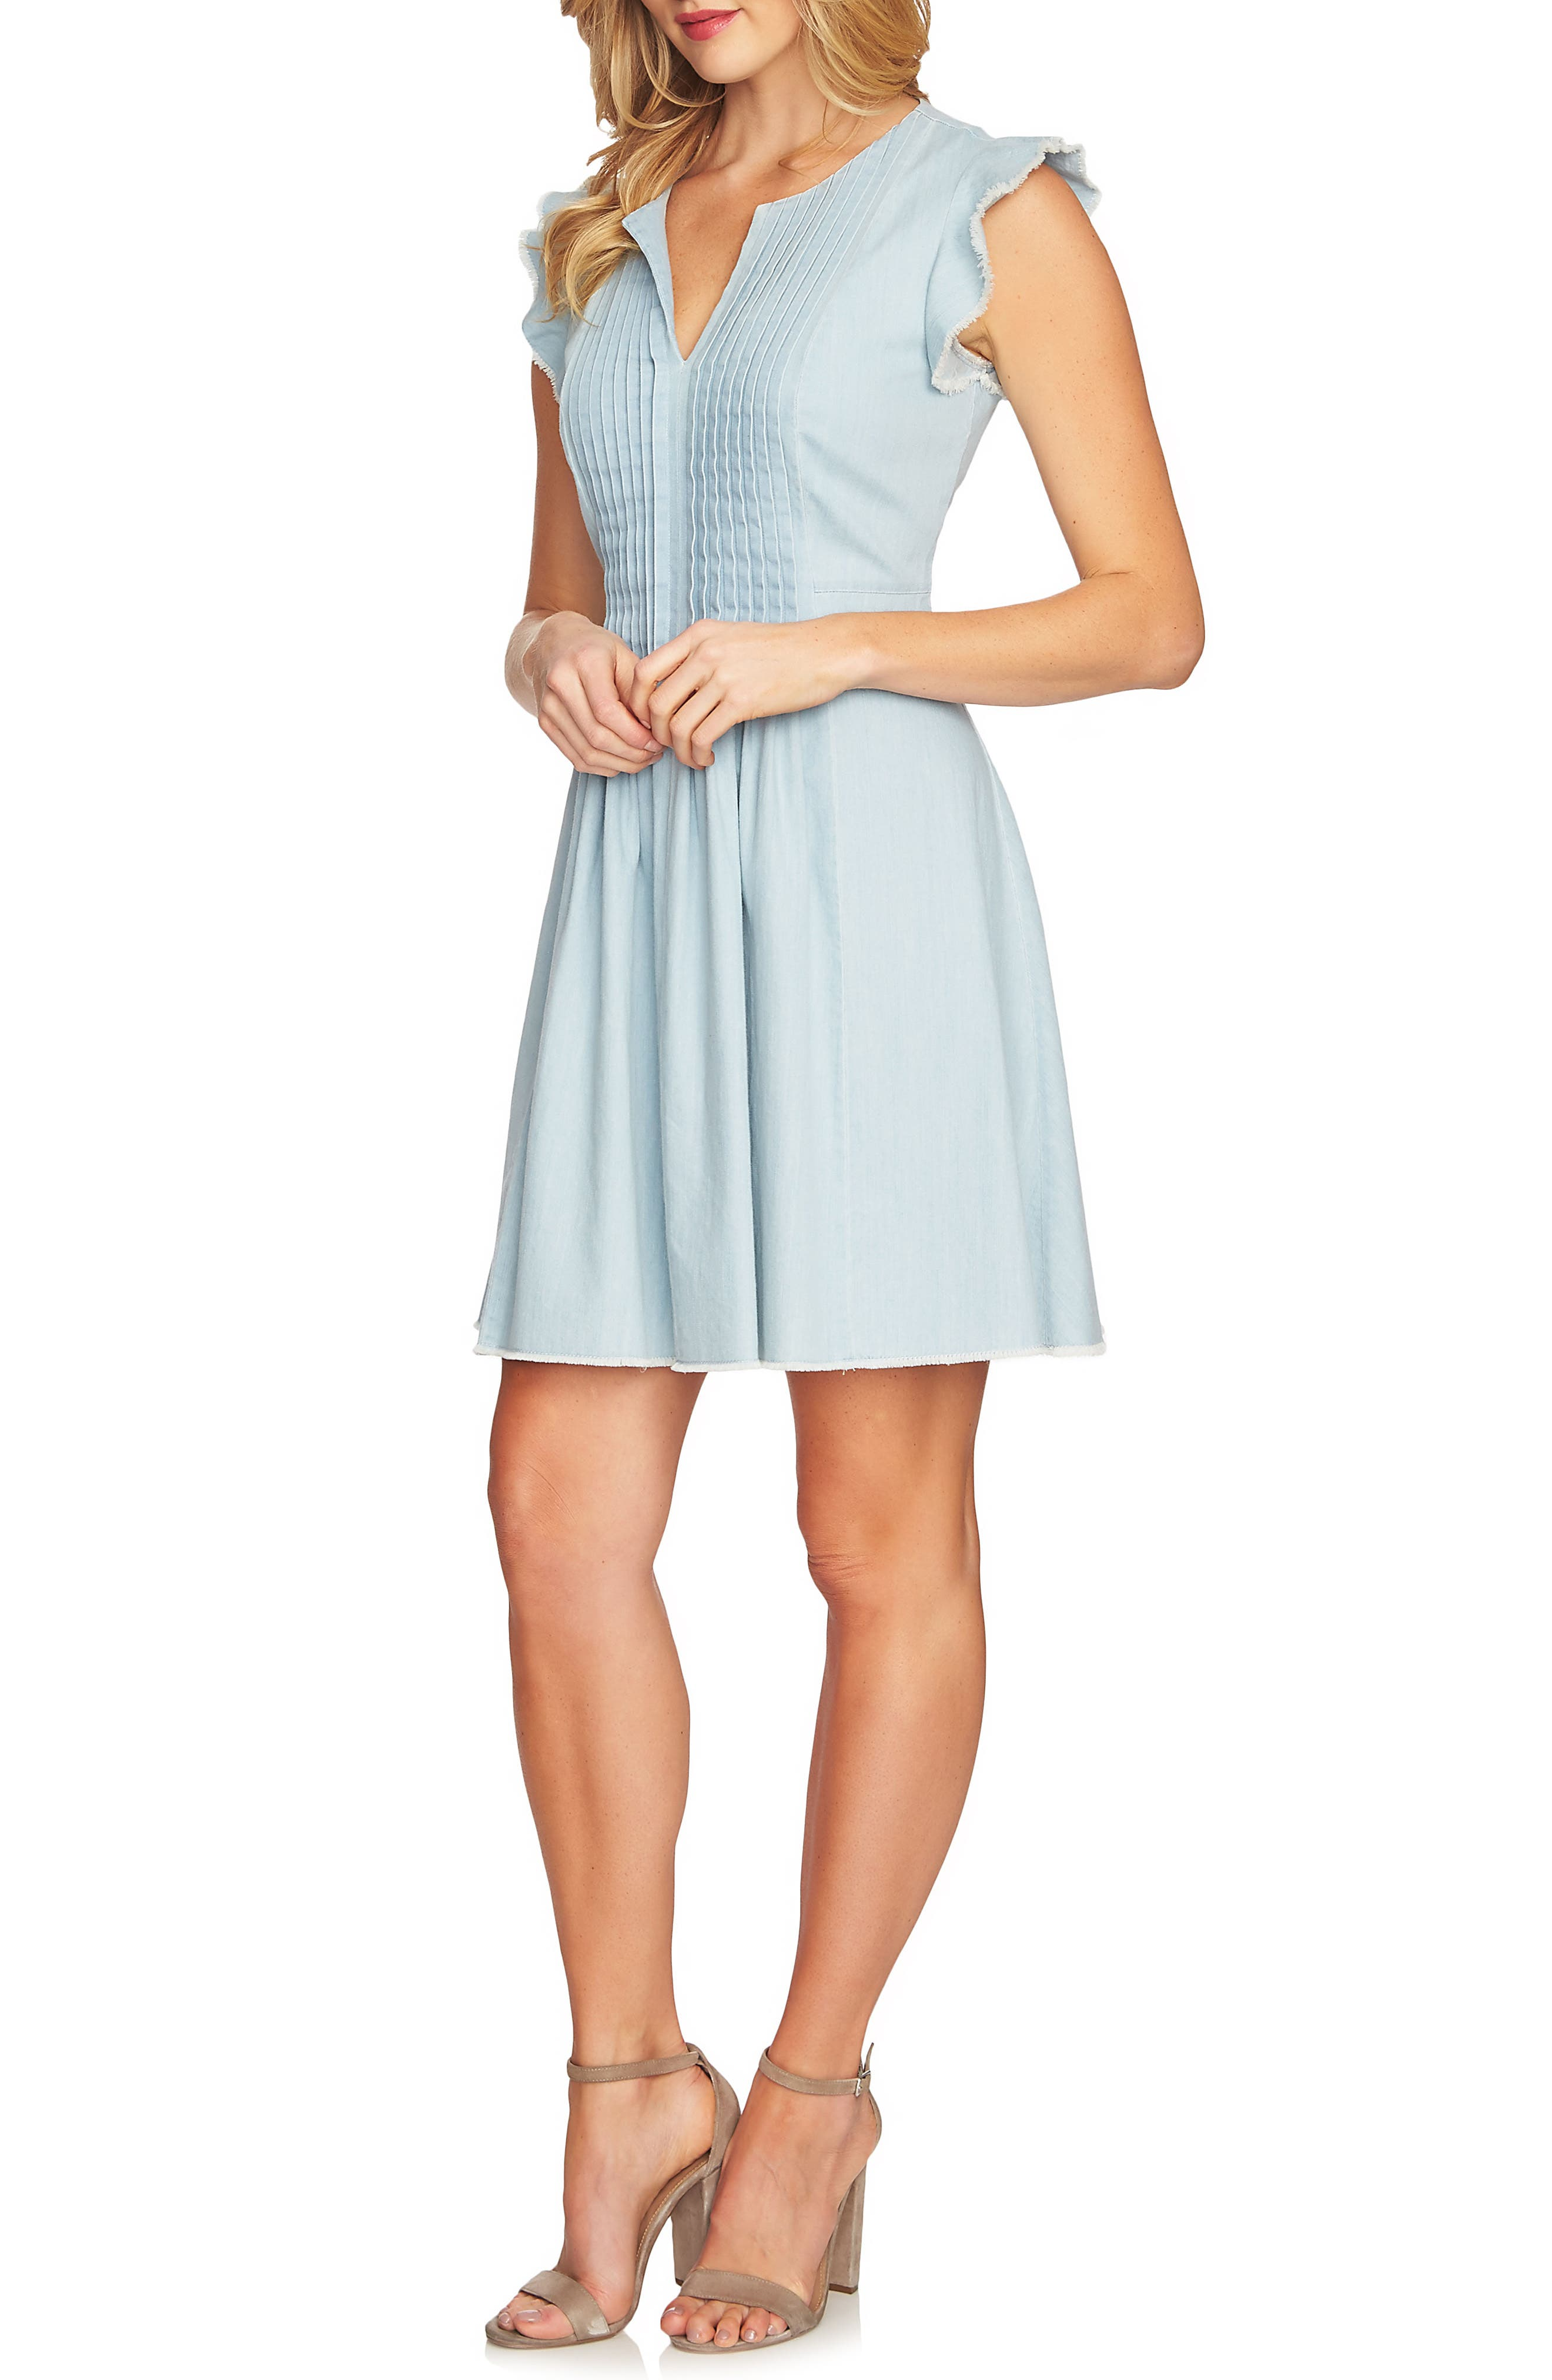 Pintuck Cotton Denim Fit and Flare Dress,                             Main thumbnail 1, color,                             Ocean Drift